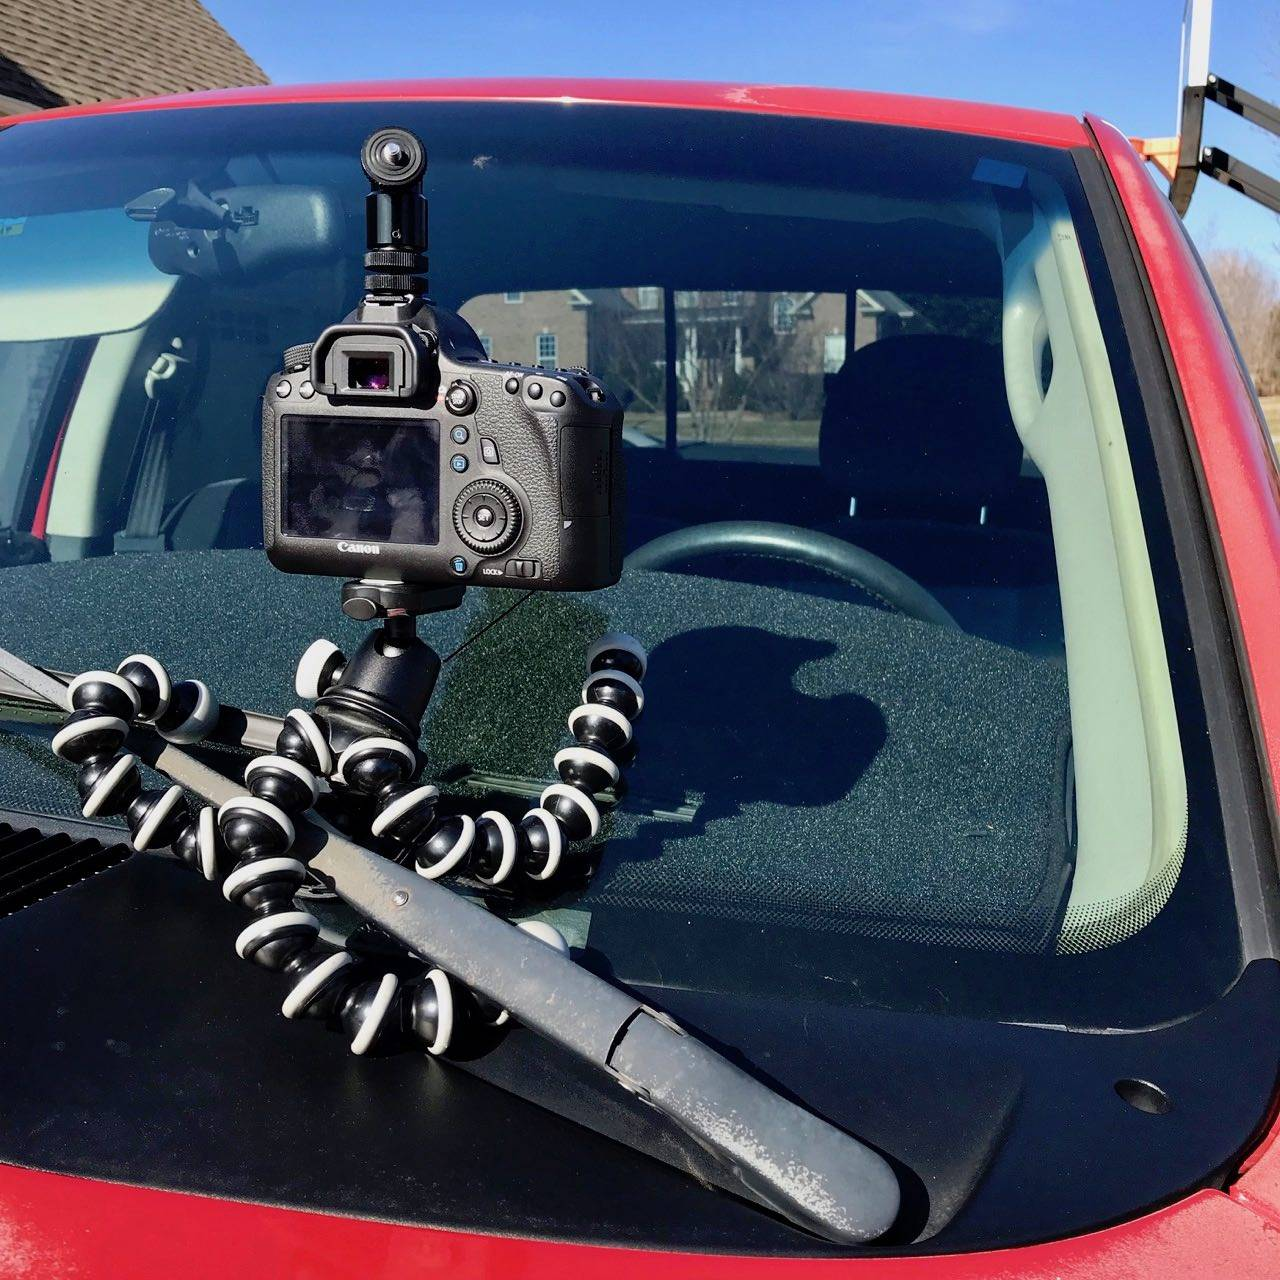 GorillaPod wrapped around vehicle's windshield wiper.